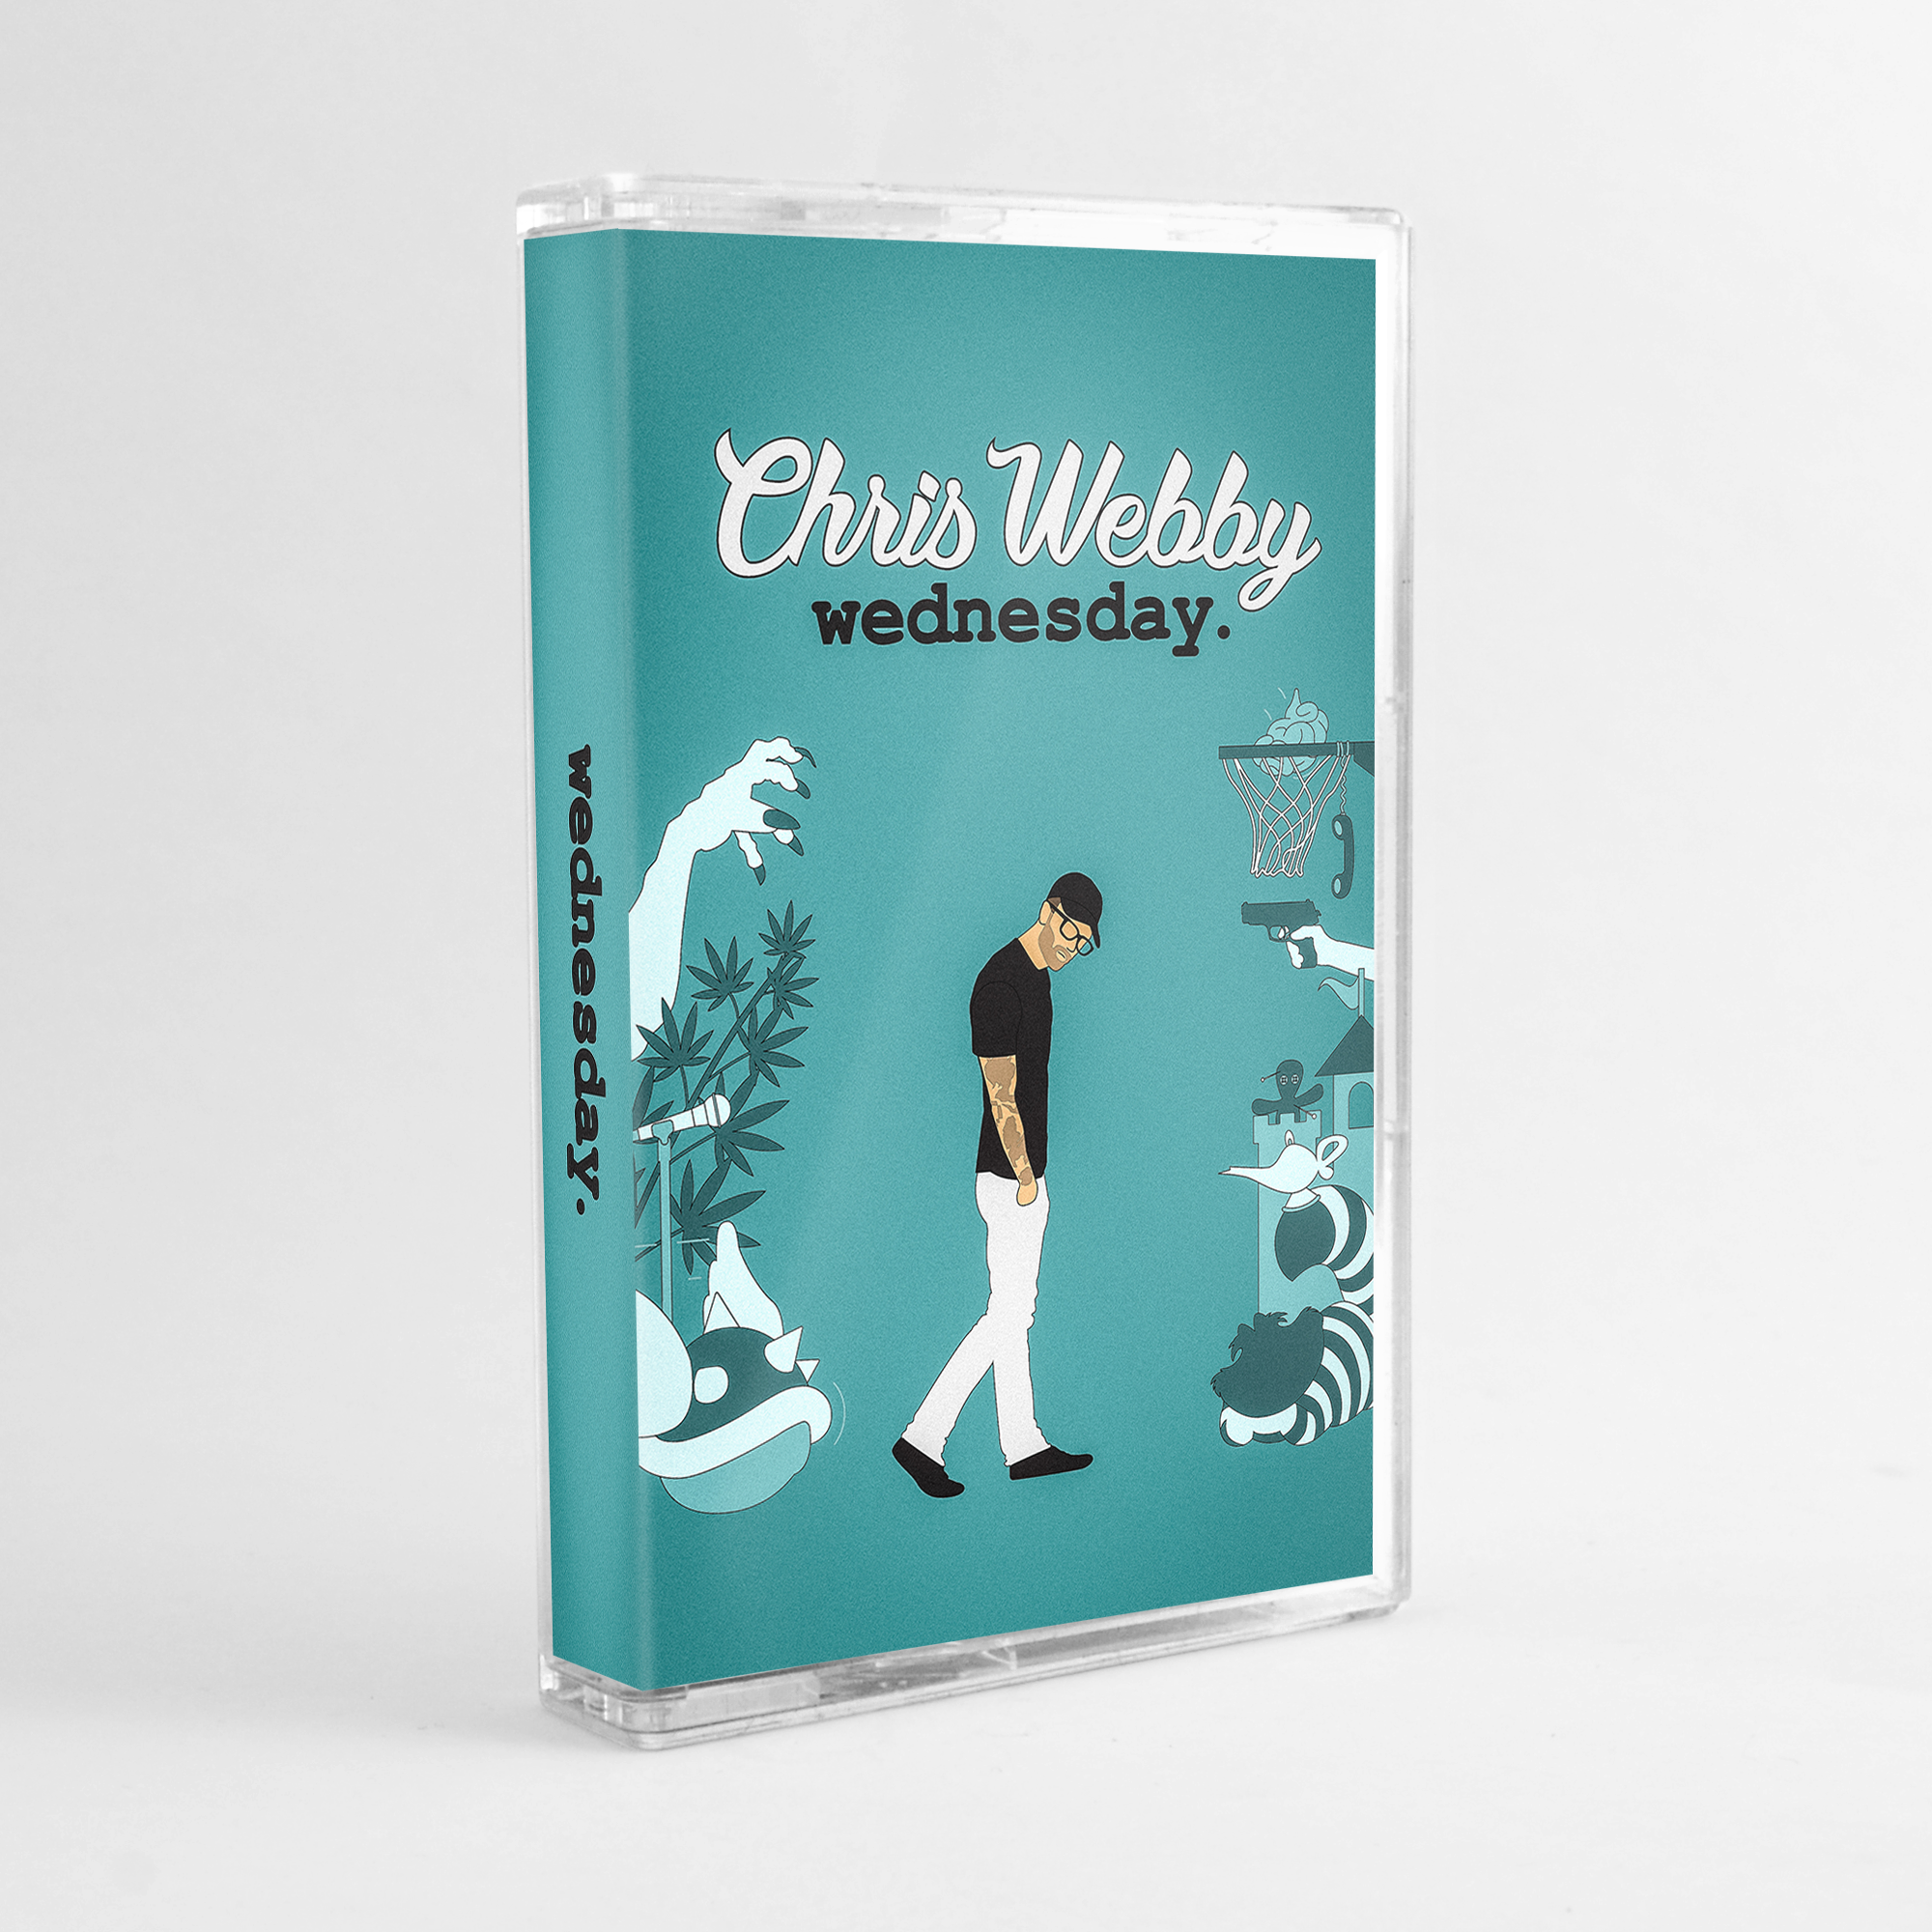 Wednesday Limited Edition Cassette Tape